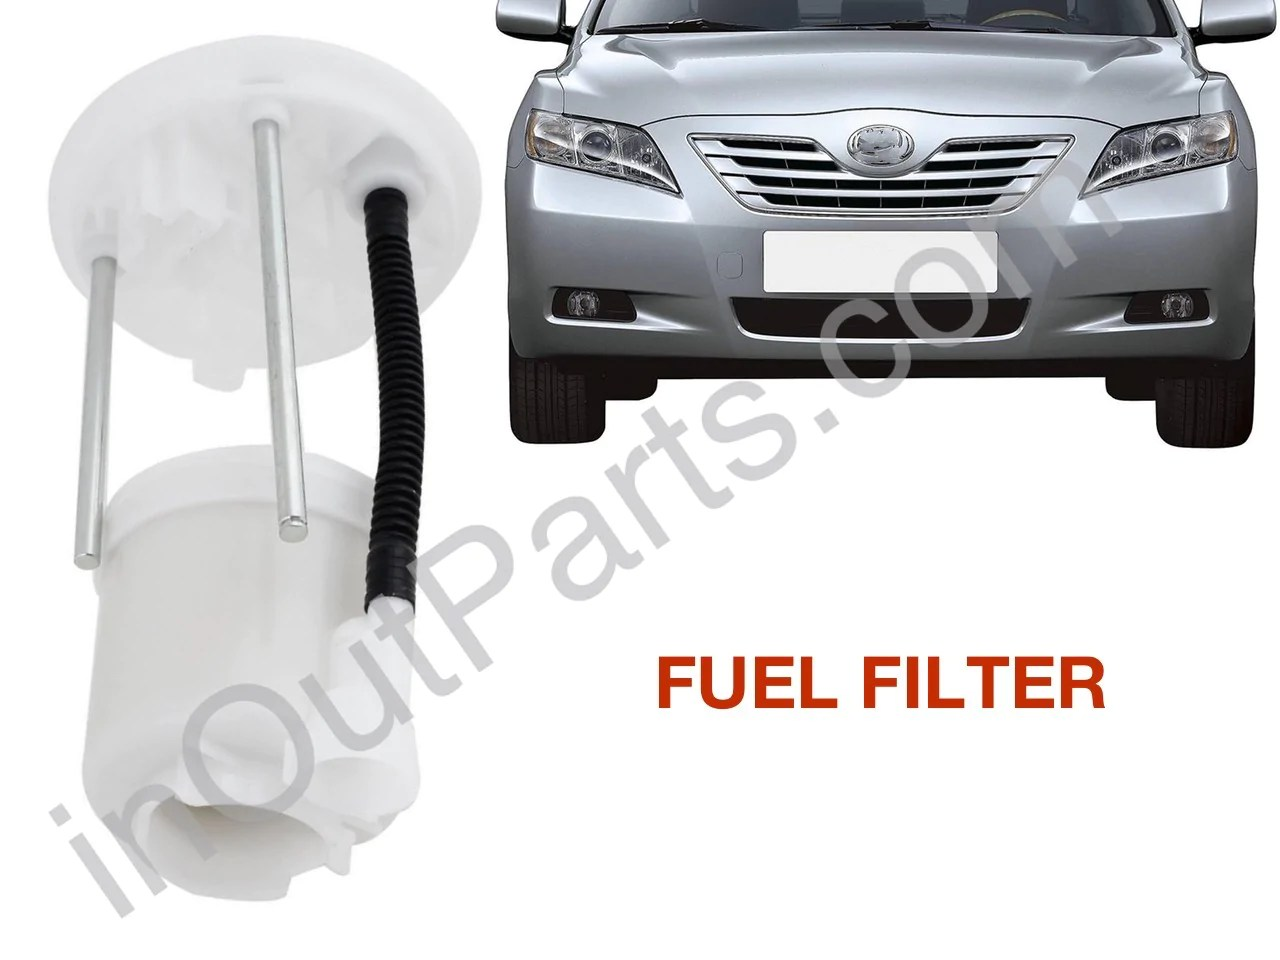 hight resolution of fuel filter toyota camry 2azfe 2006 2007 2008 2009 2010 2011 2012 2013 2014 2015 2016